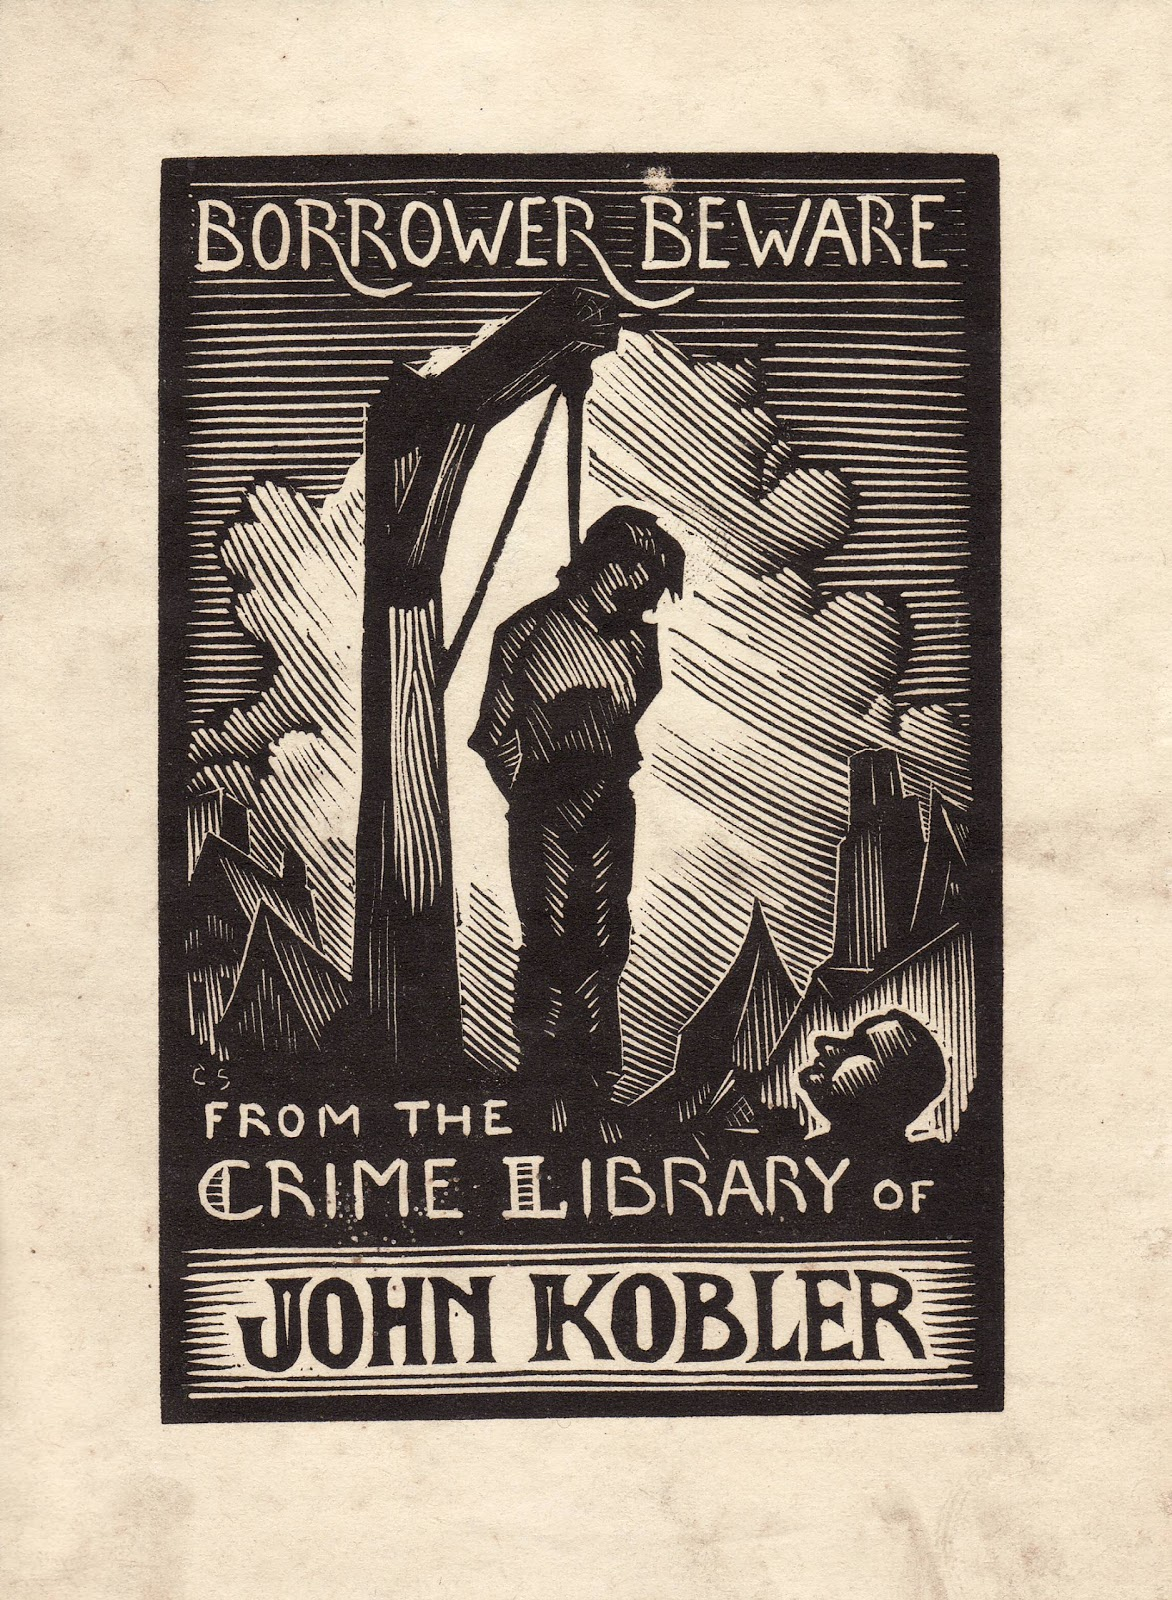 Confessions Of A Bookplate Junkie This Week In Bookplates 11182012